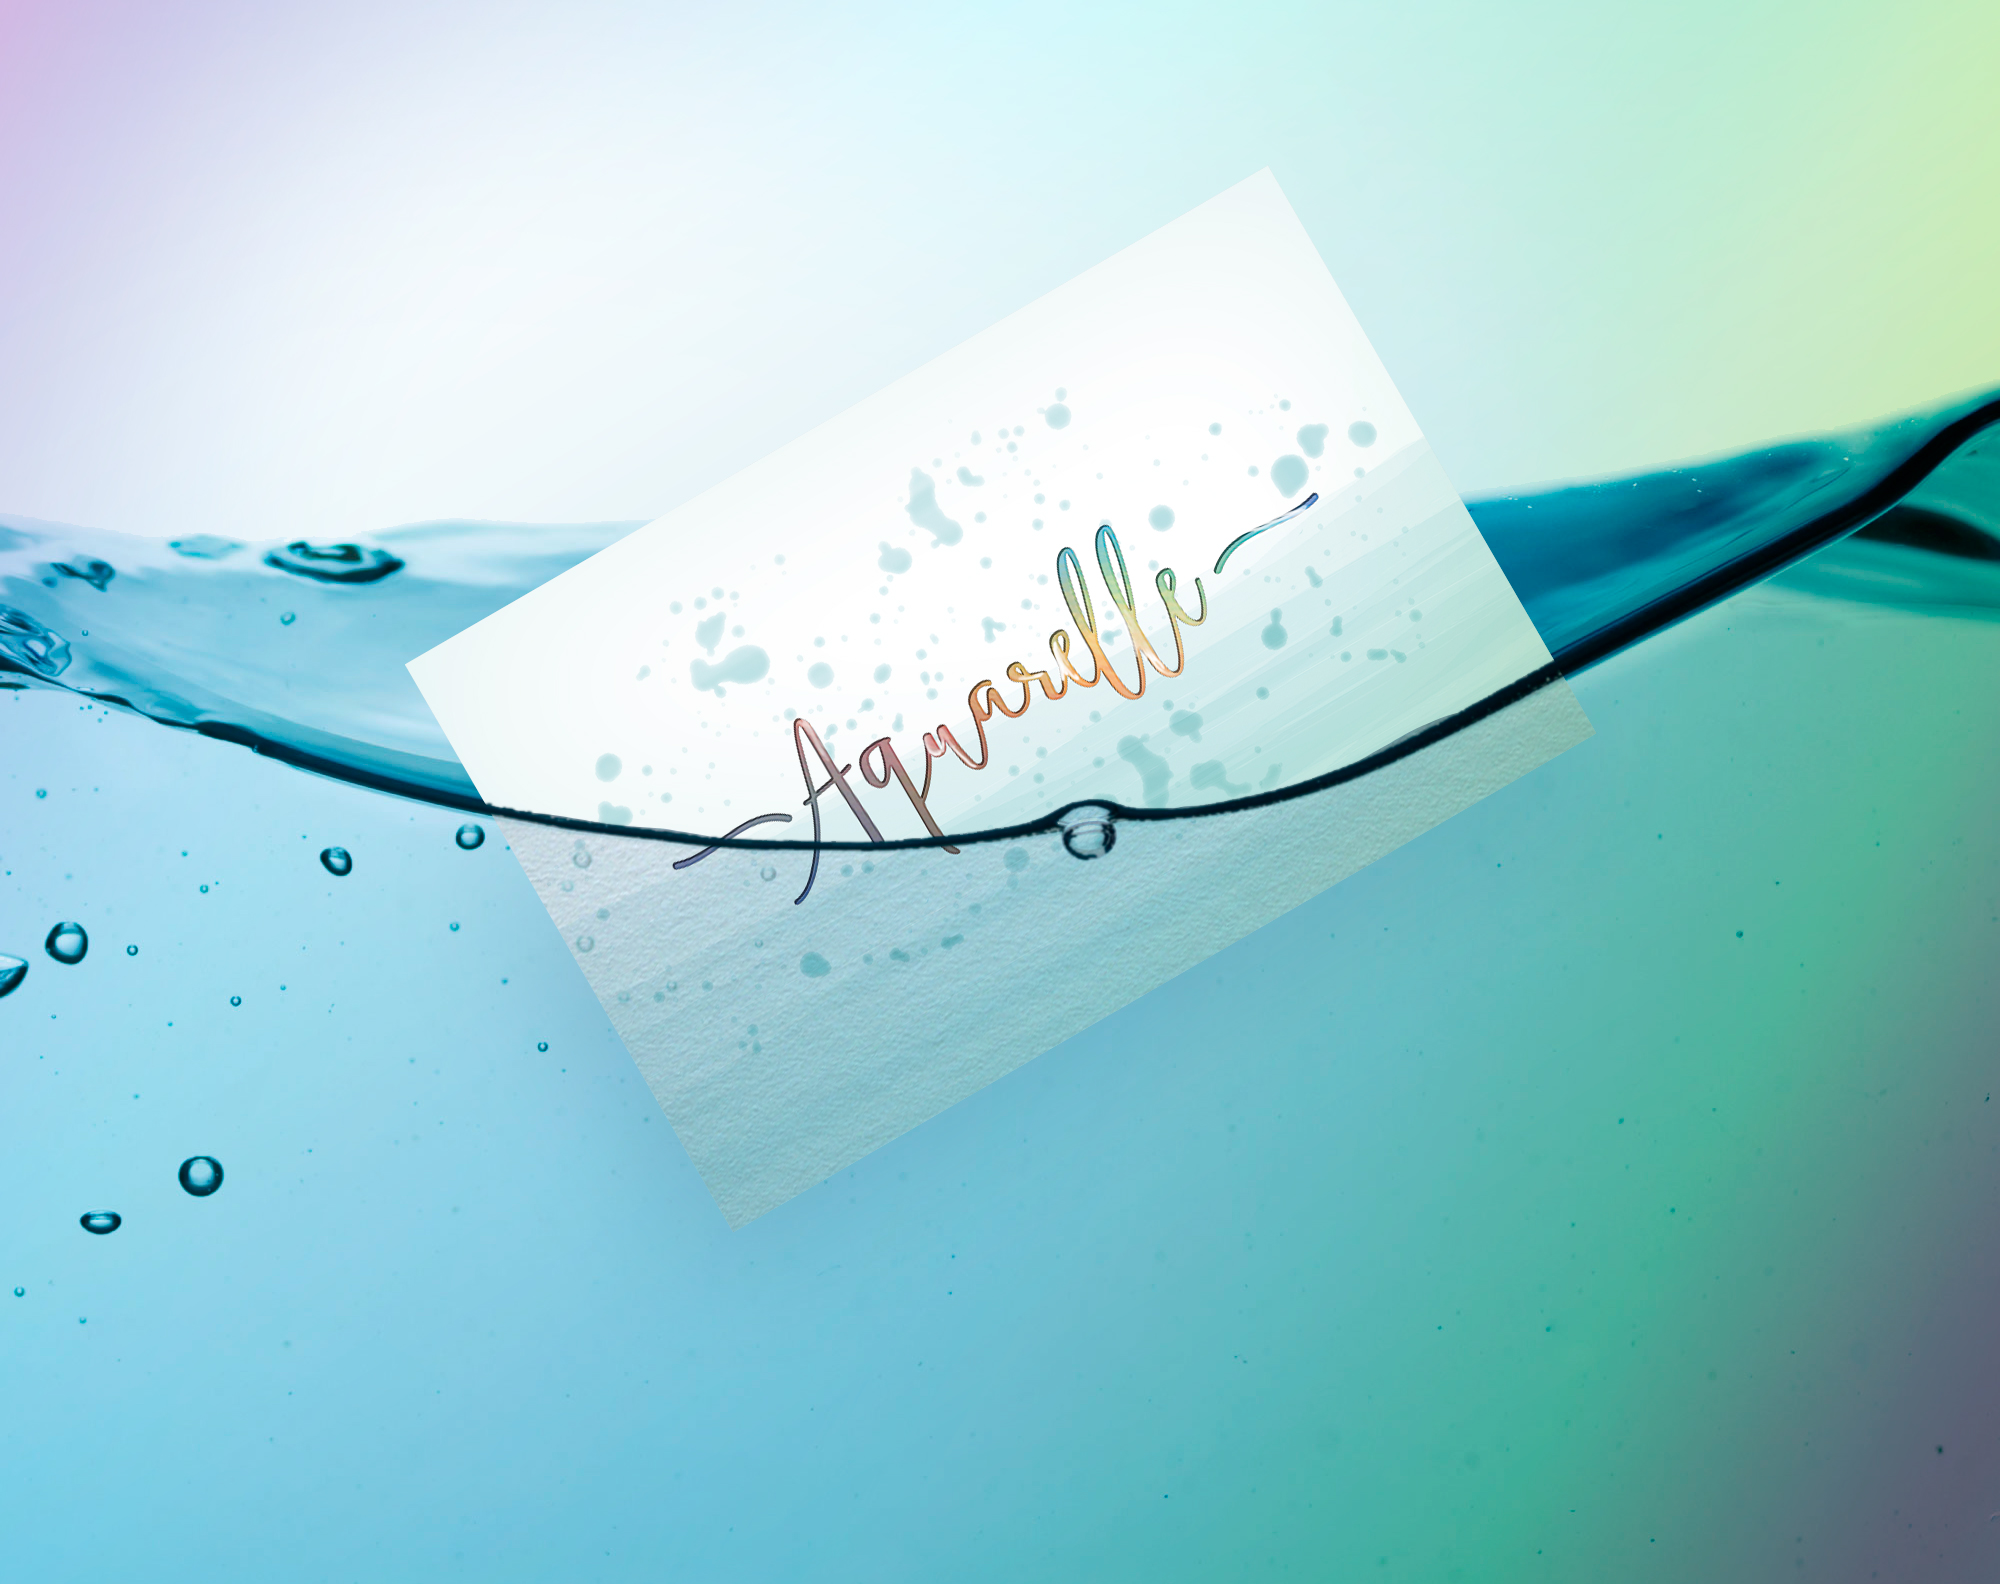 - Aquarelle ZeleThe client wanted us to create a logo for their swimmingpool concept. We tried to capture the touch of water in the type of the logo. It had to give the impression  of moving and reflective water. This effect was achieved by using holographic hotfoil, combined with waterline paint.